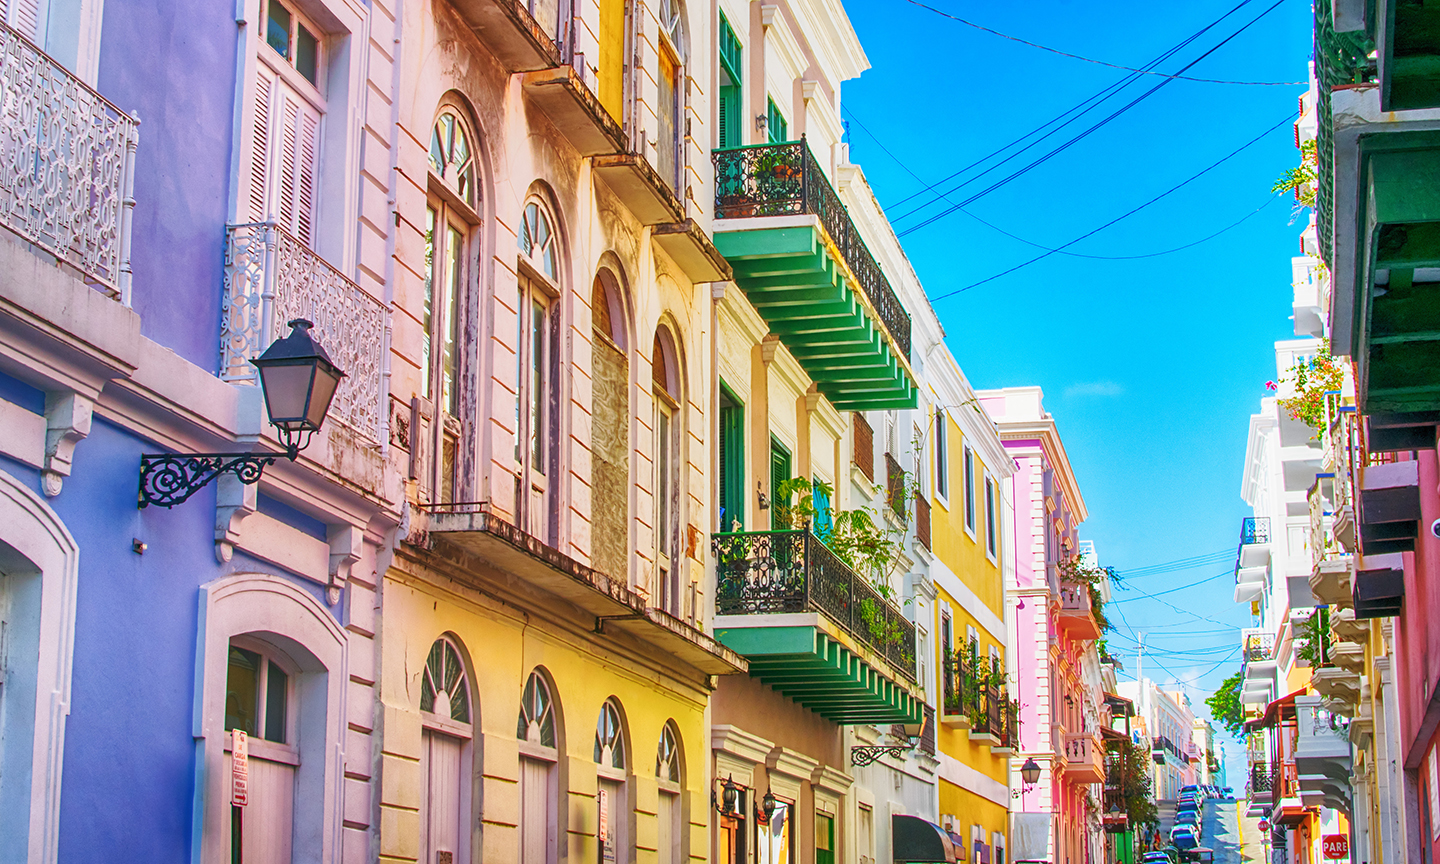 A typical street in Old San Juan, Puerto Rico, with colorful buildings and blue sky.